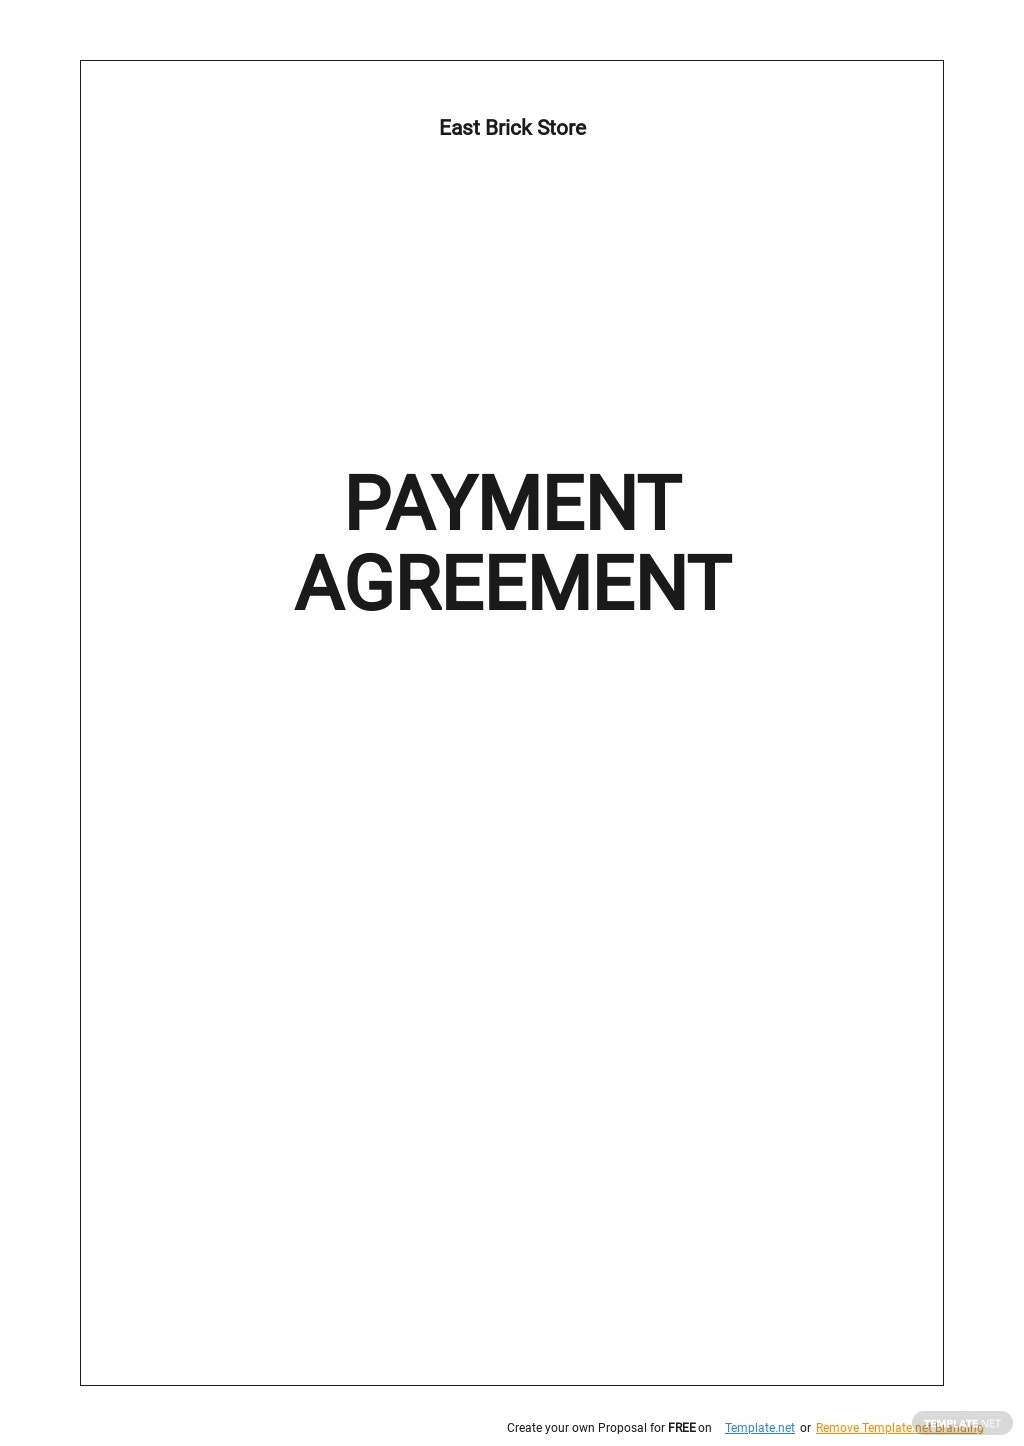 Simple Payment Agreement Template.jpe